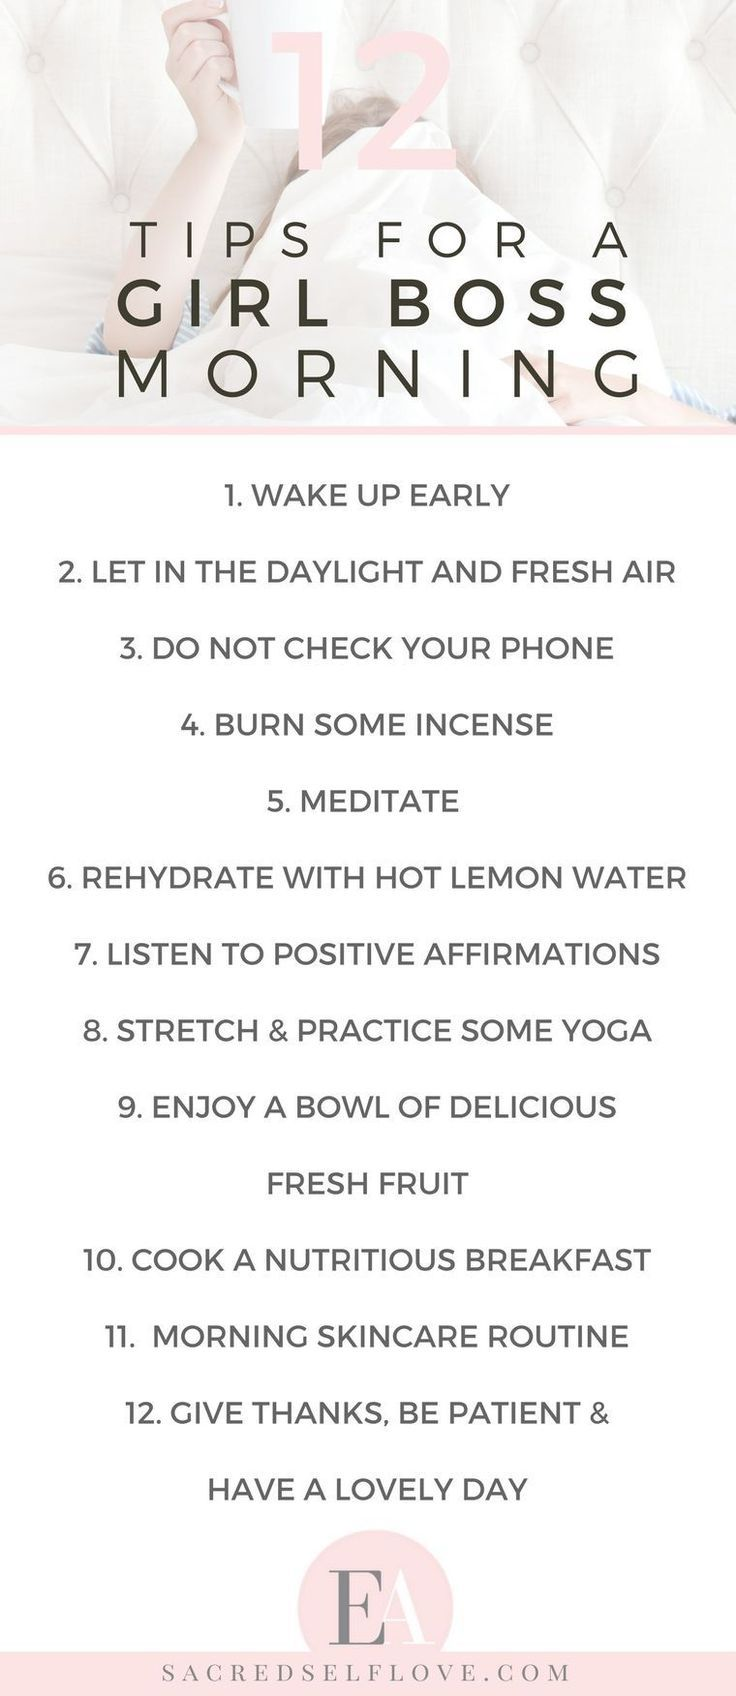 Self Care Morning Routine With Images Self Improvement Self